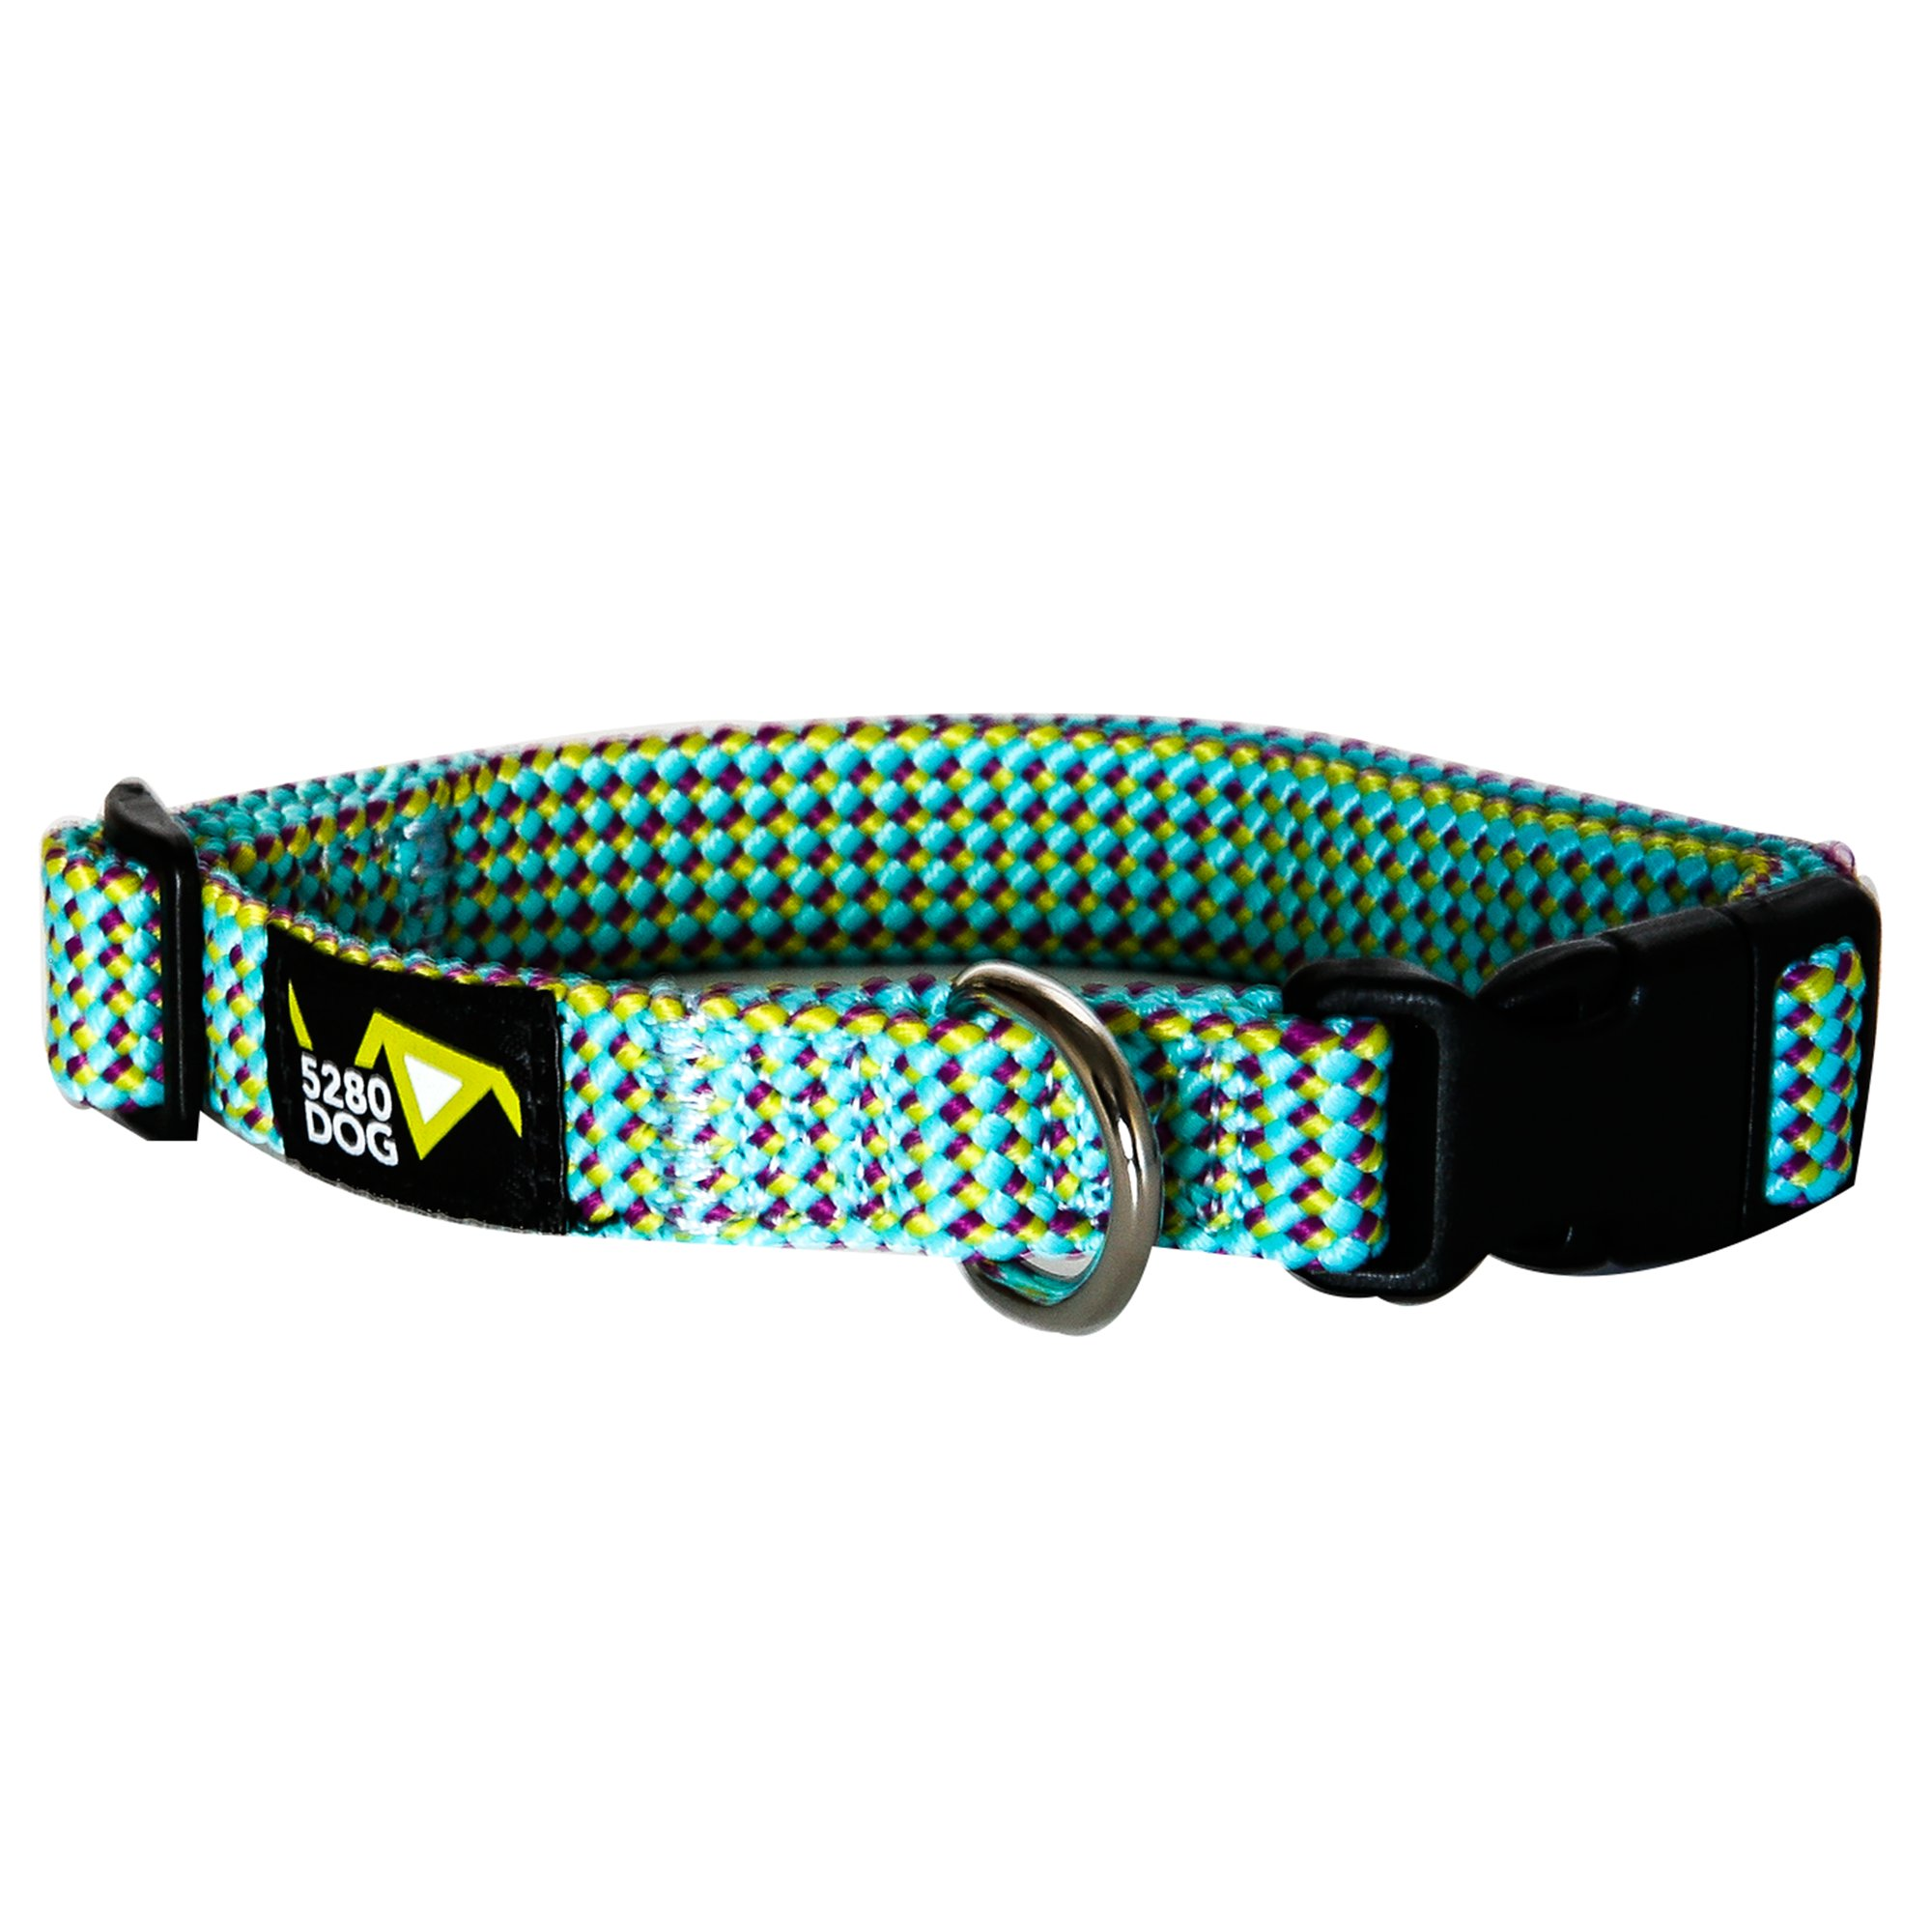 5280DOG Sea Green Braided Collar, Medium